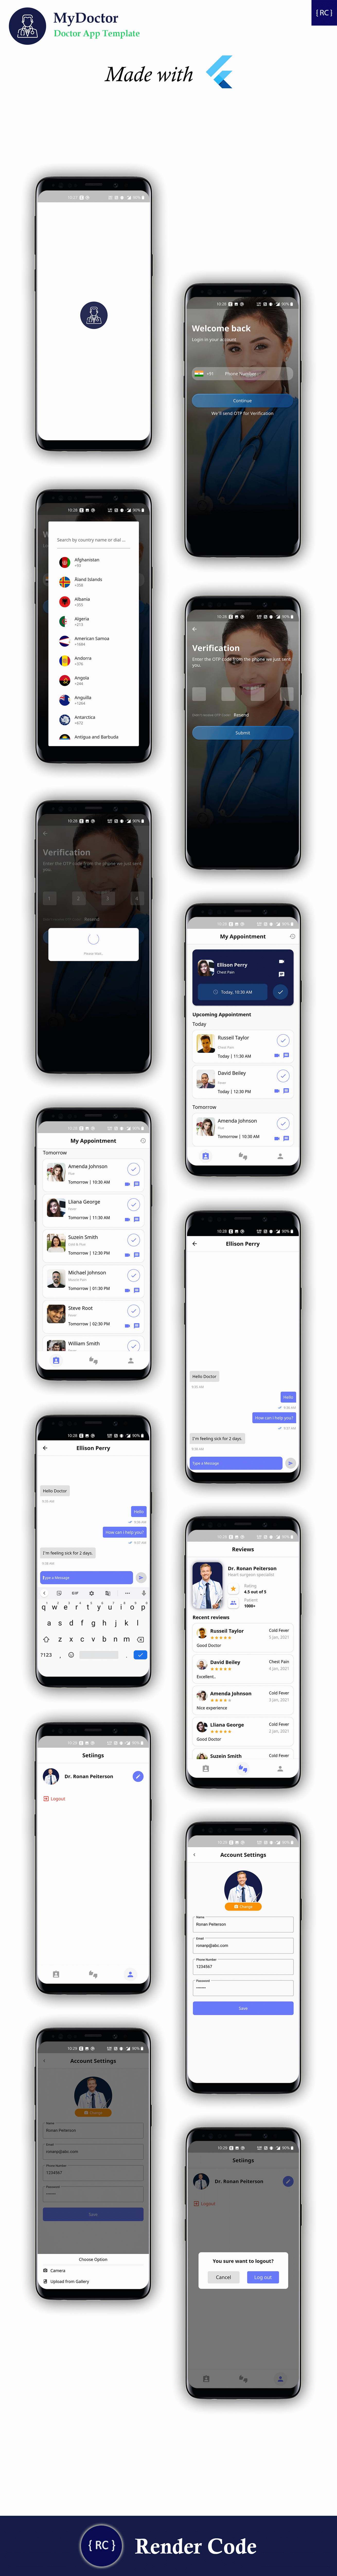 Doctor Appointment Booking App Template Flutter | 2 Apps | User App + Doctor App | MyDoctor - 5